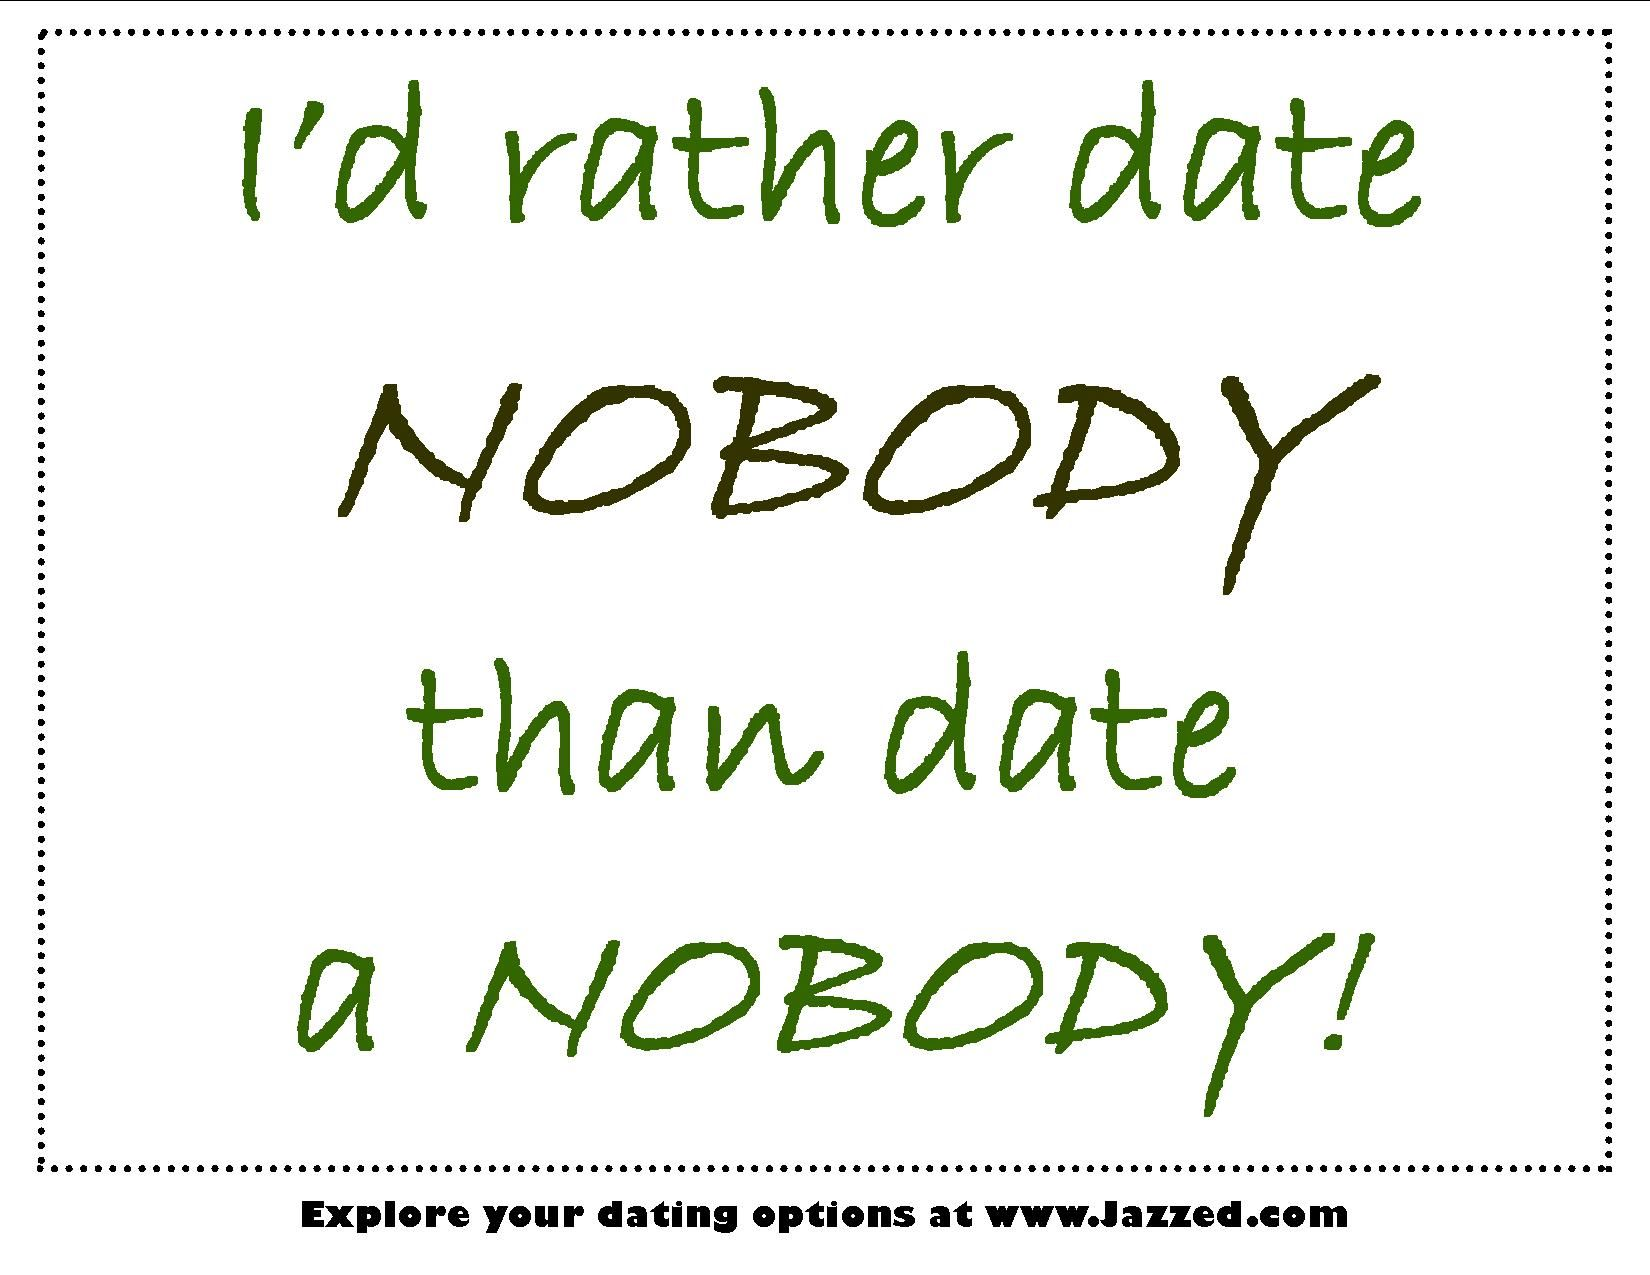 Keep dating losers